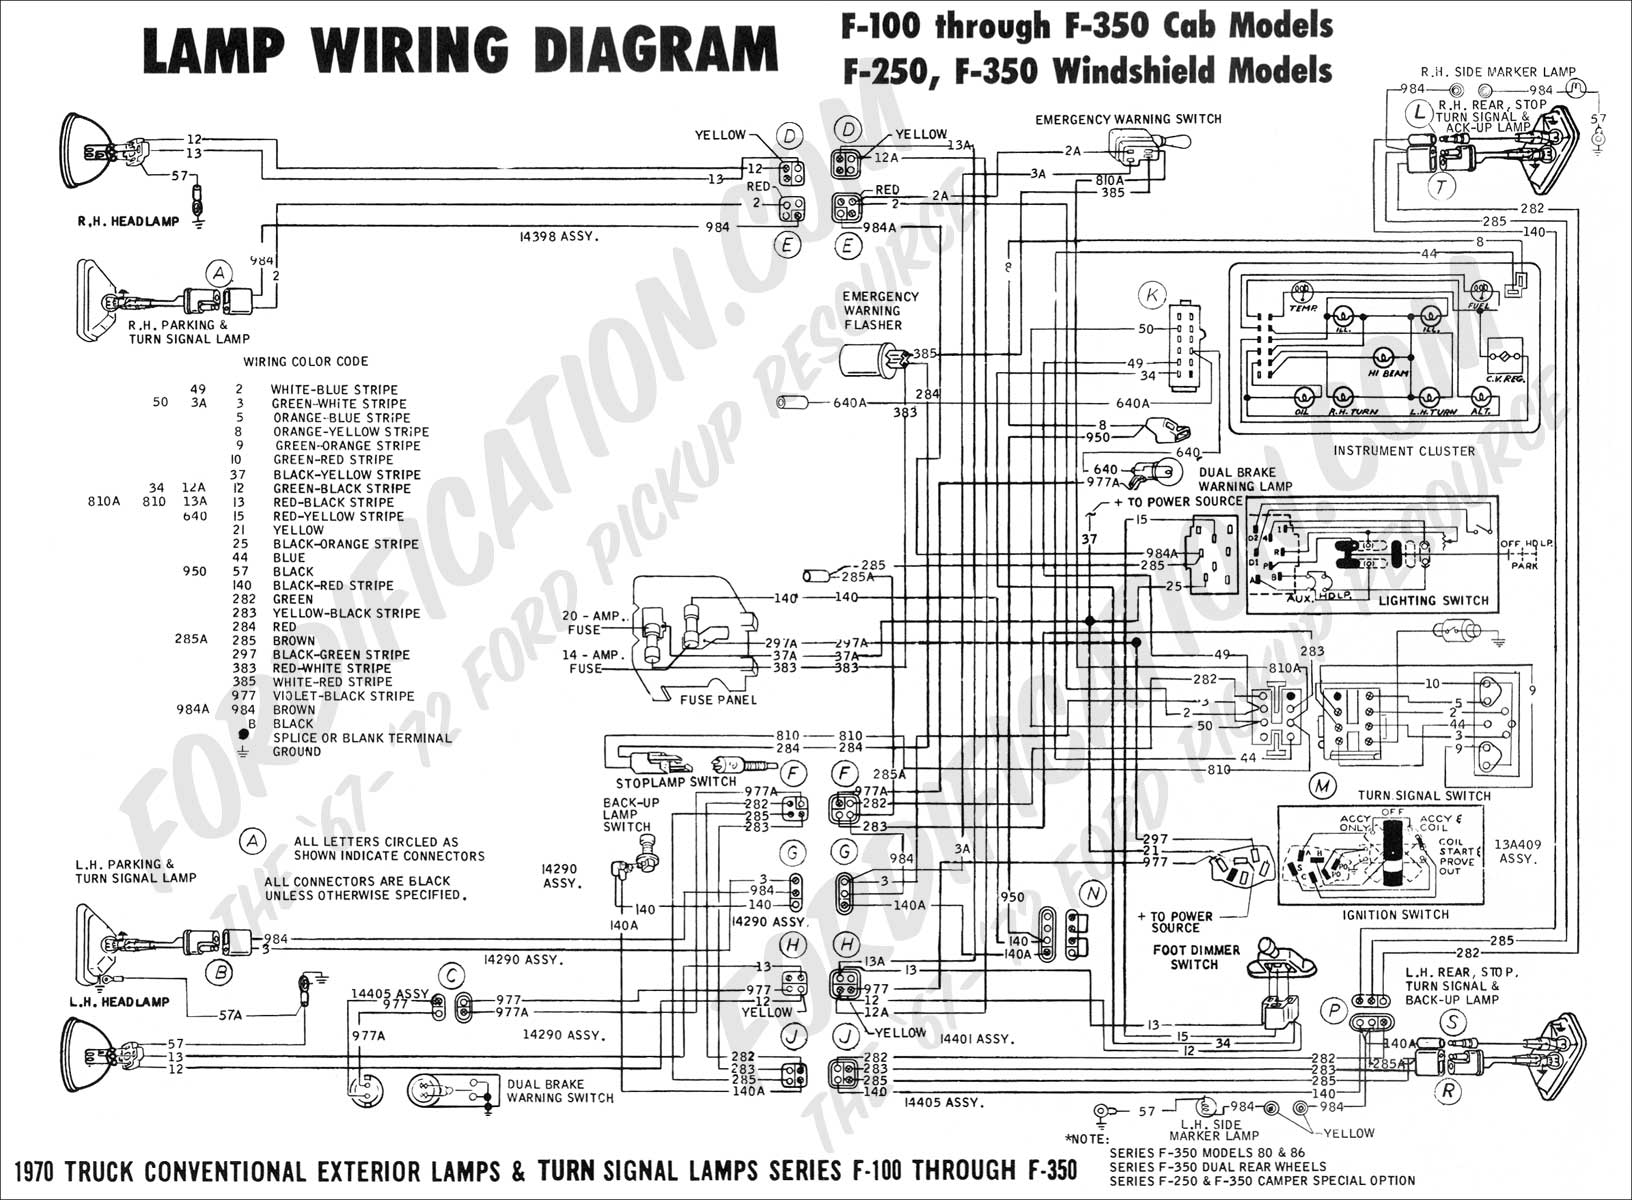 wiring diagram_70ext lights01 ford f250 wiring diagram online f250 trailer wiring diagram 2014 Ford F-250 Super Duty at eliteediting.co